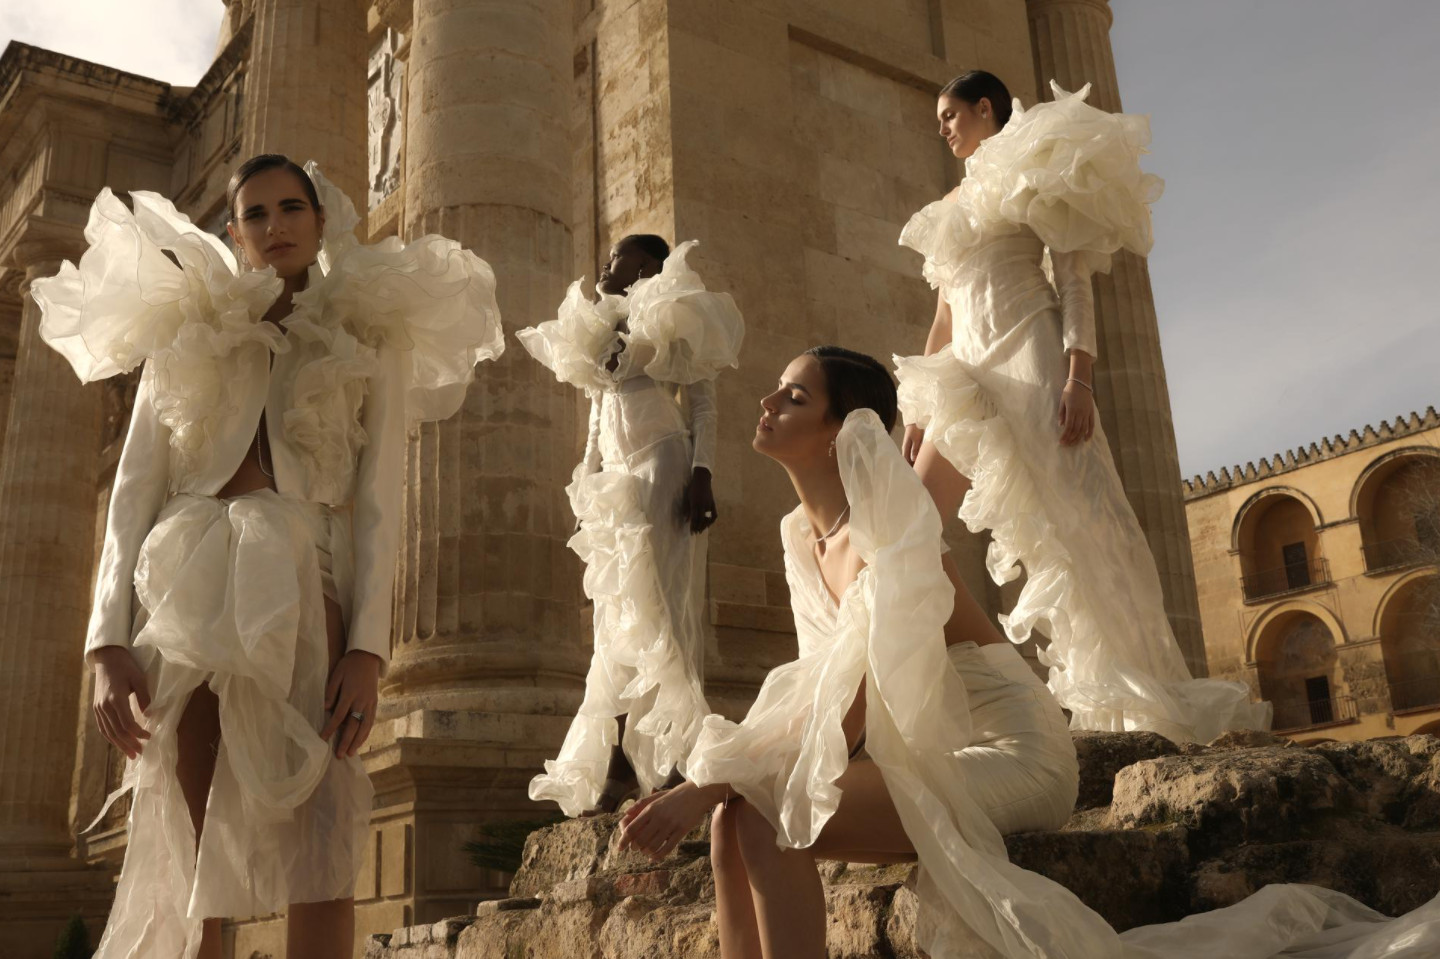 Juana martin ss21 couture in collaboration with unesco during paris menswear fashion week 2021 (2)